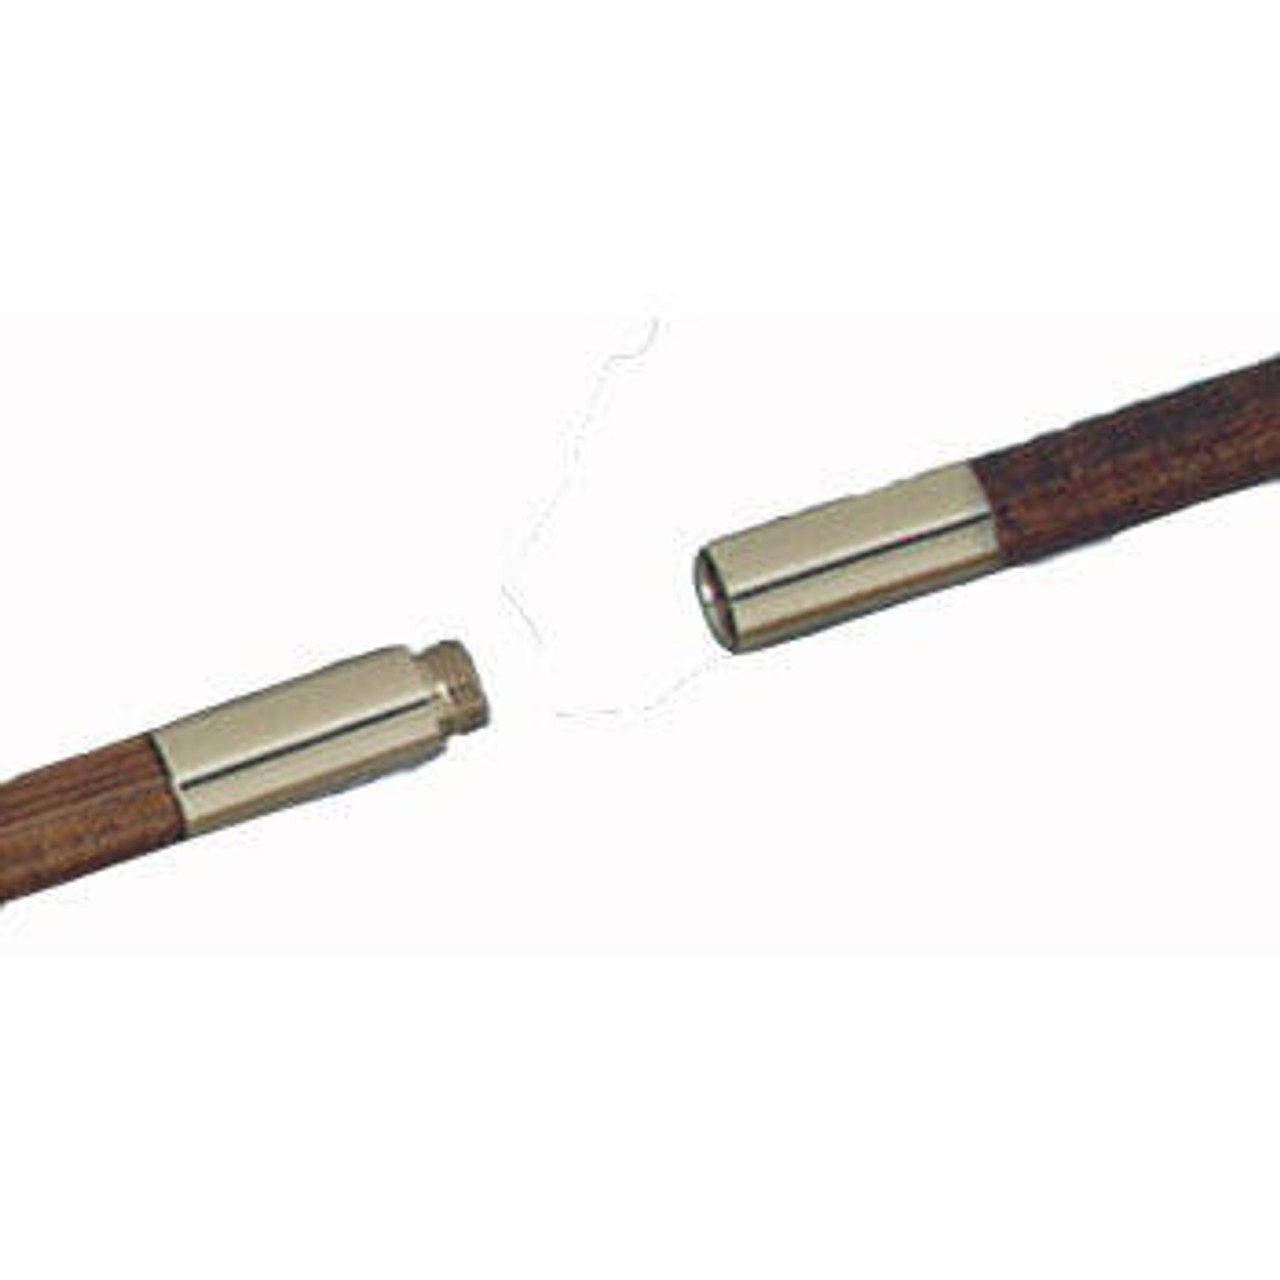 Two-piece oak pole with metal screw joints